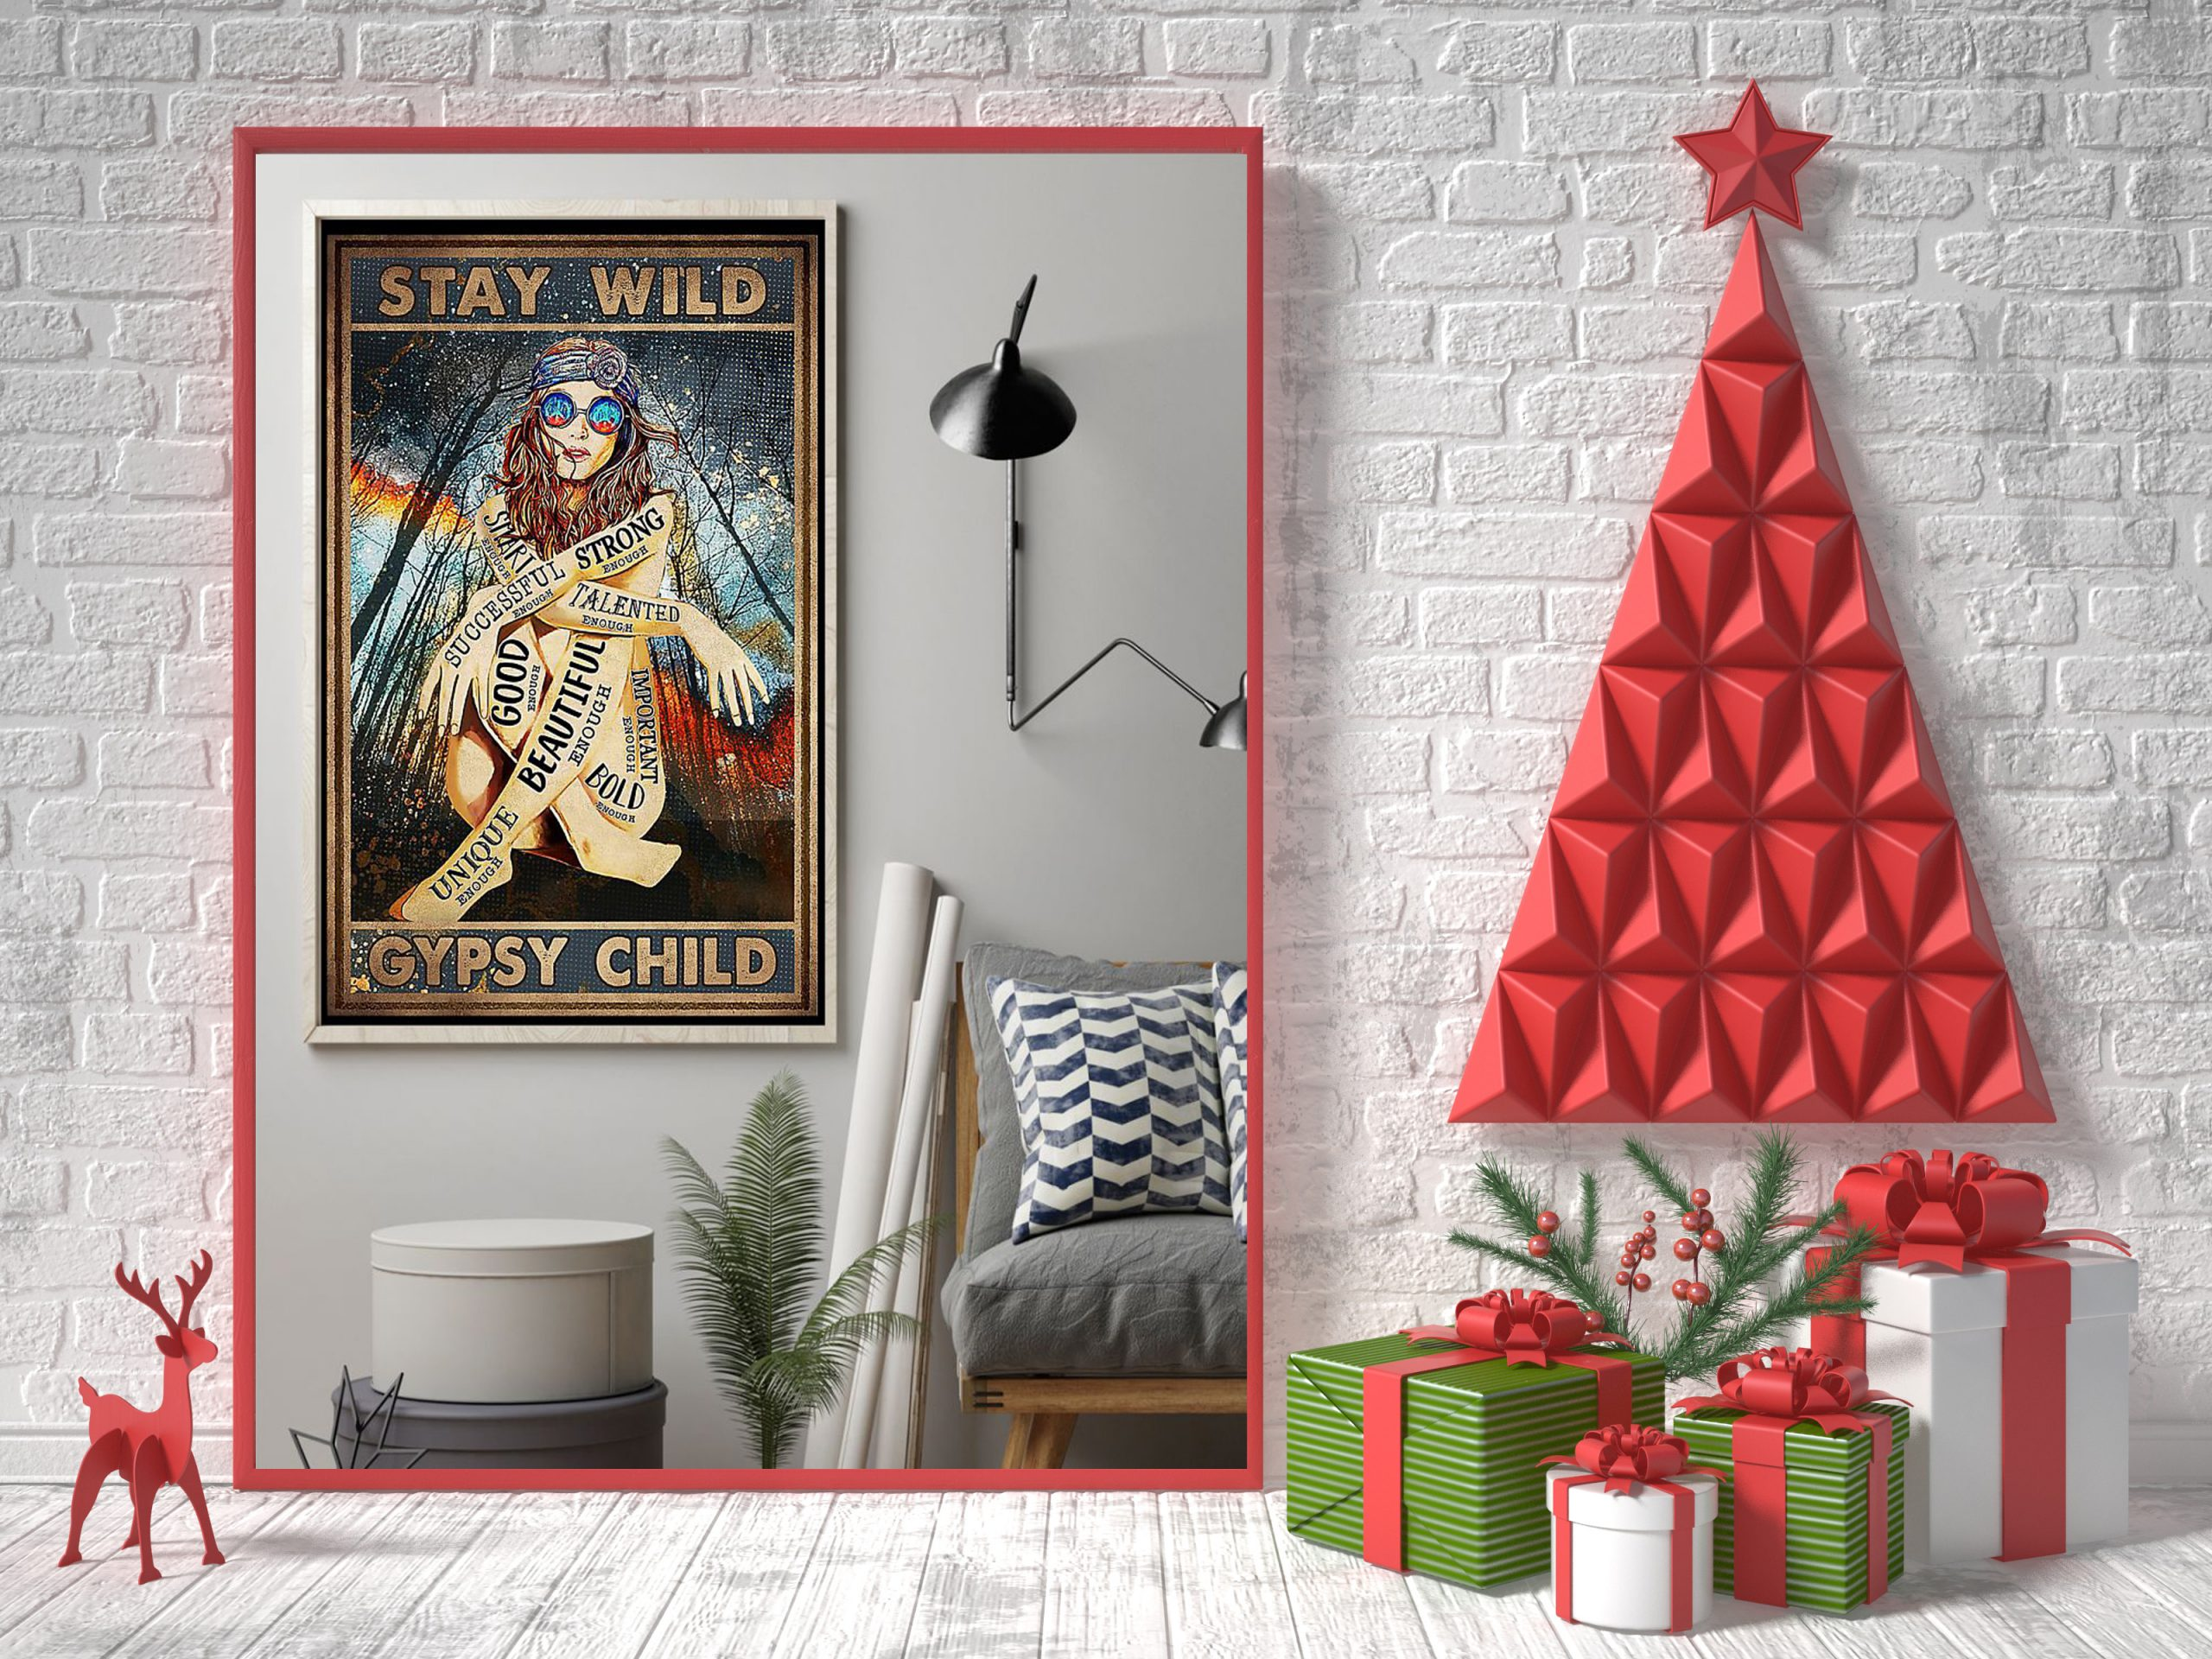 Stay wild gypsy child smart strong good beautiful poster 1